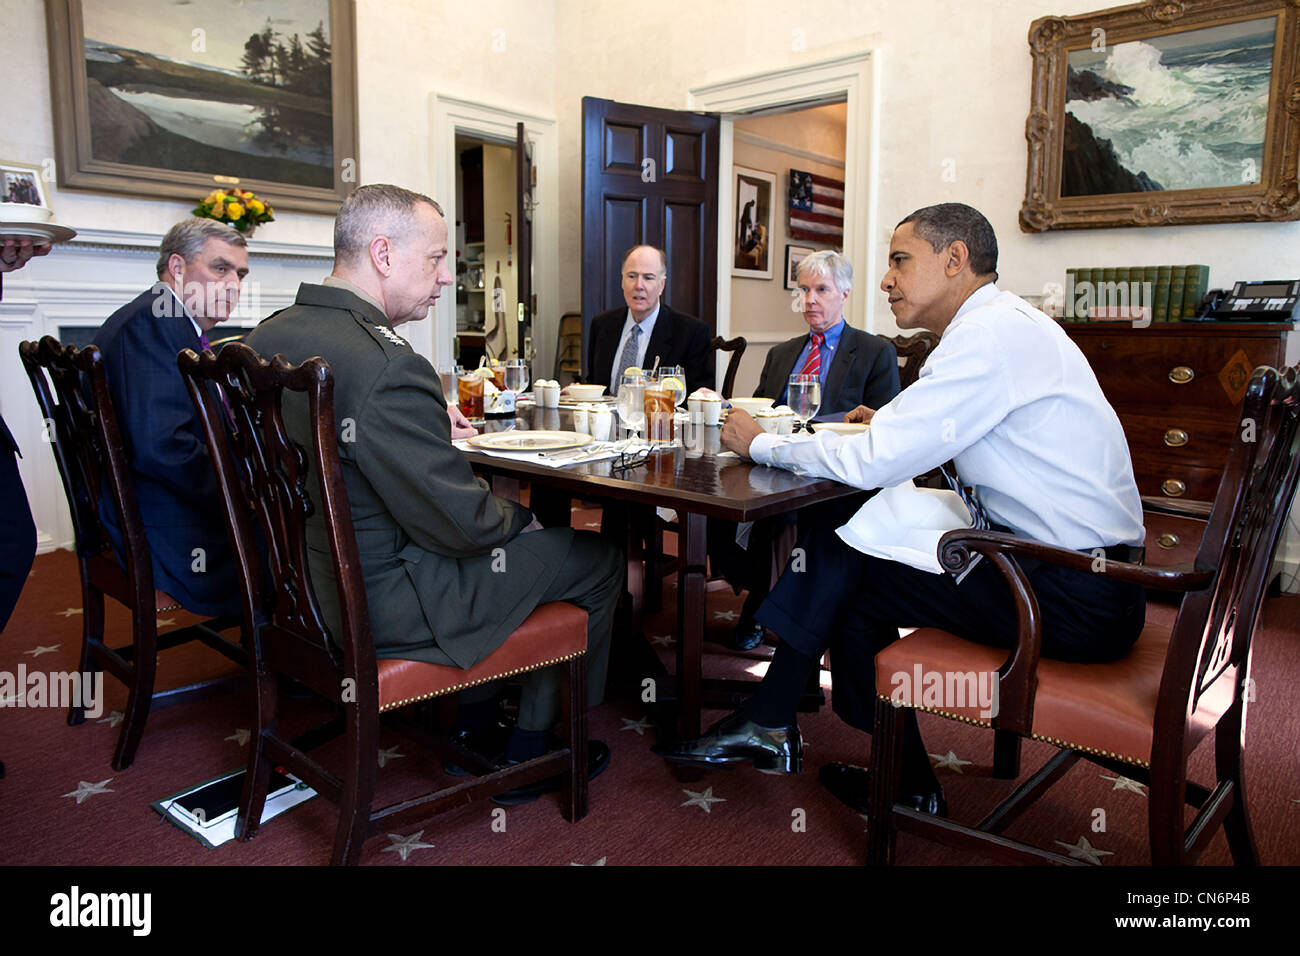 President Barack Obama has lunch with his Afghanistan Advisors in the Oval Office Private Dining Room March 12, - Stock Image